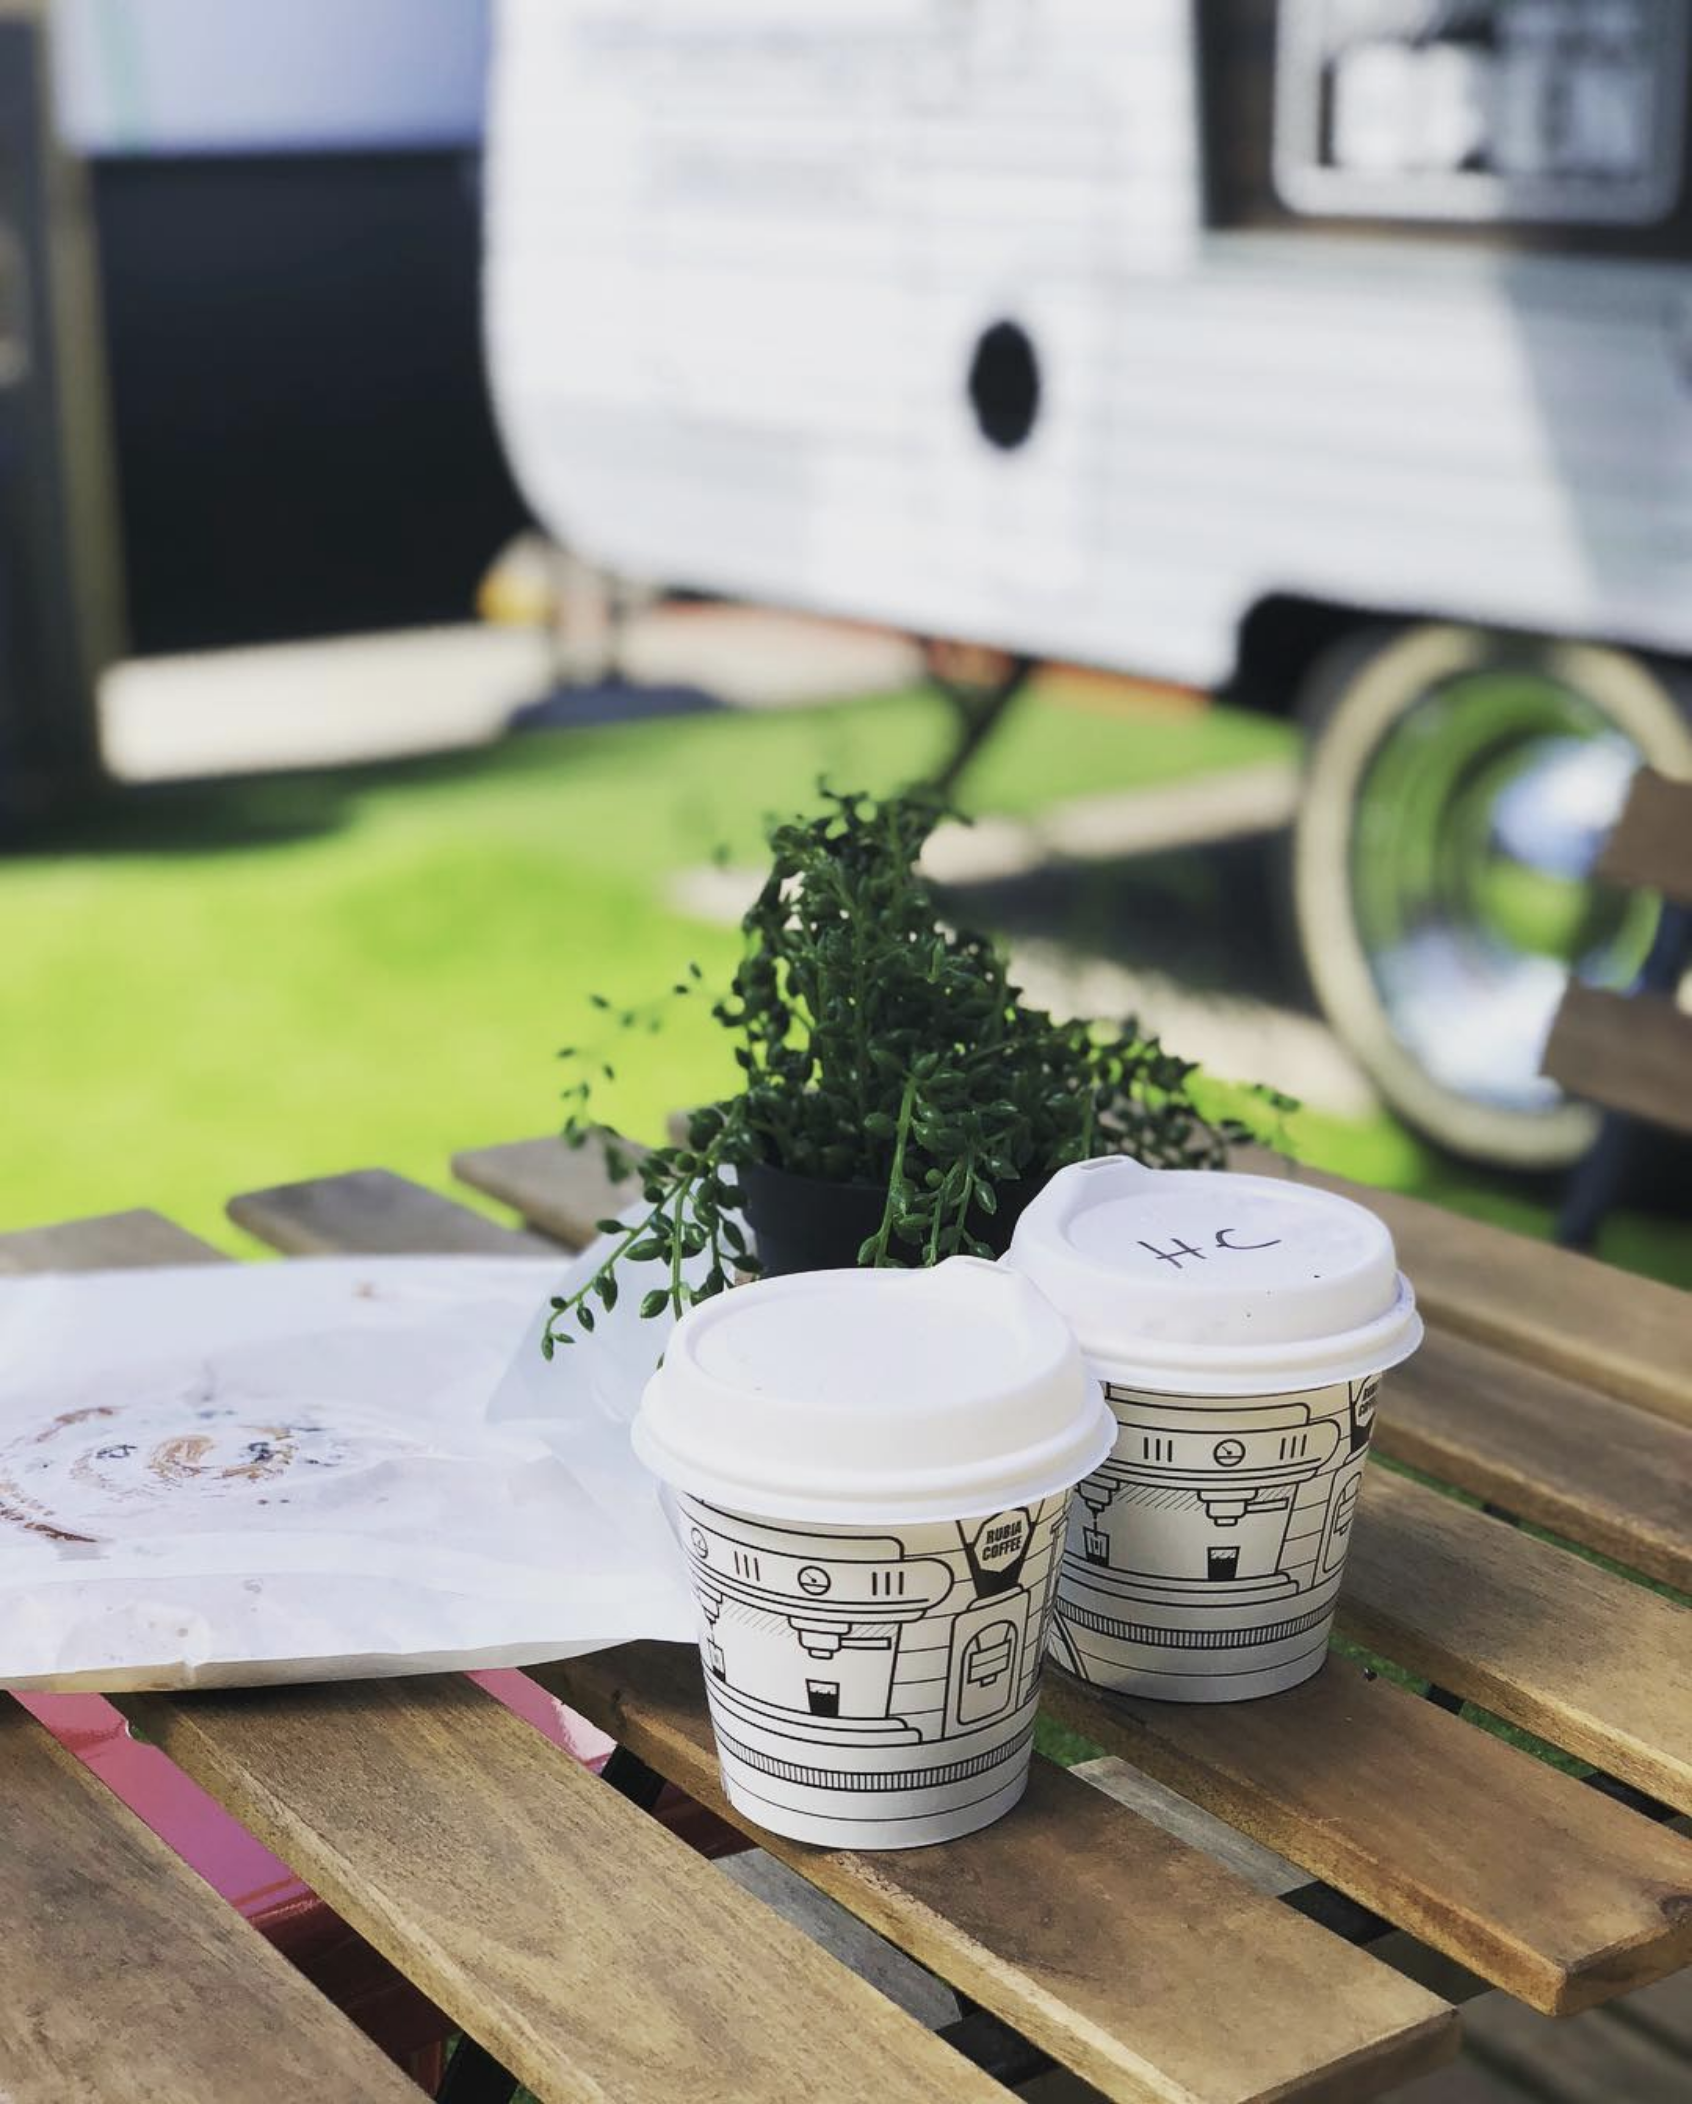 Rubia Van and take away cups